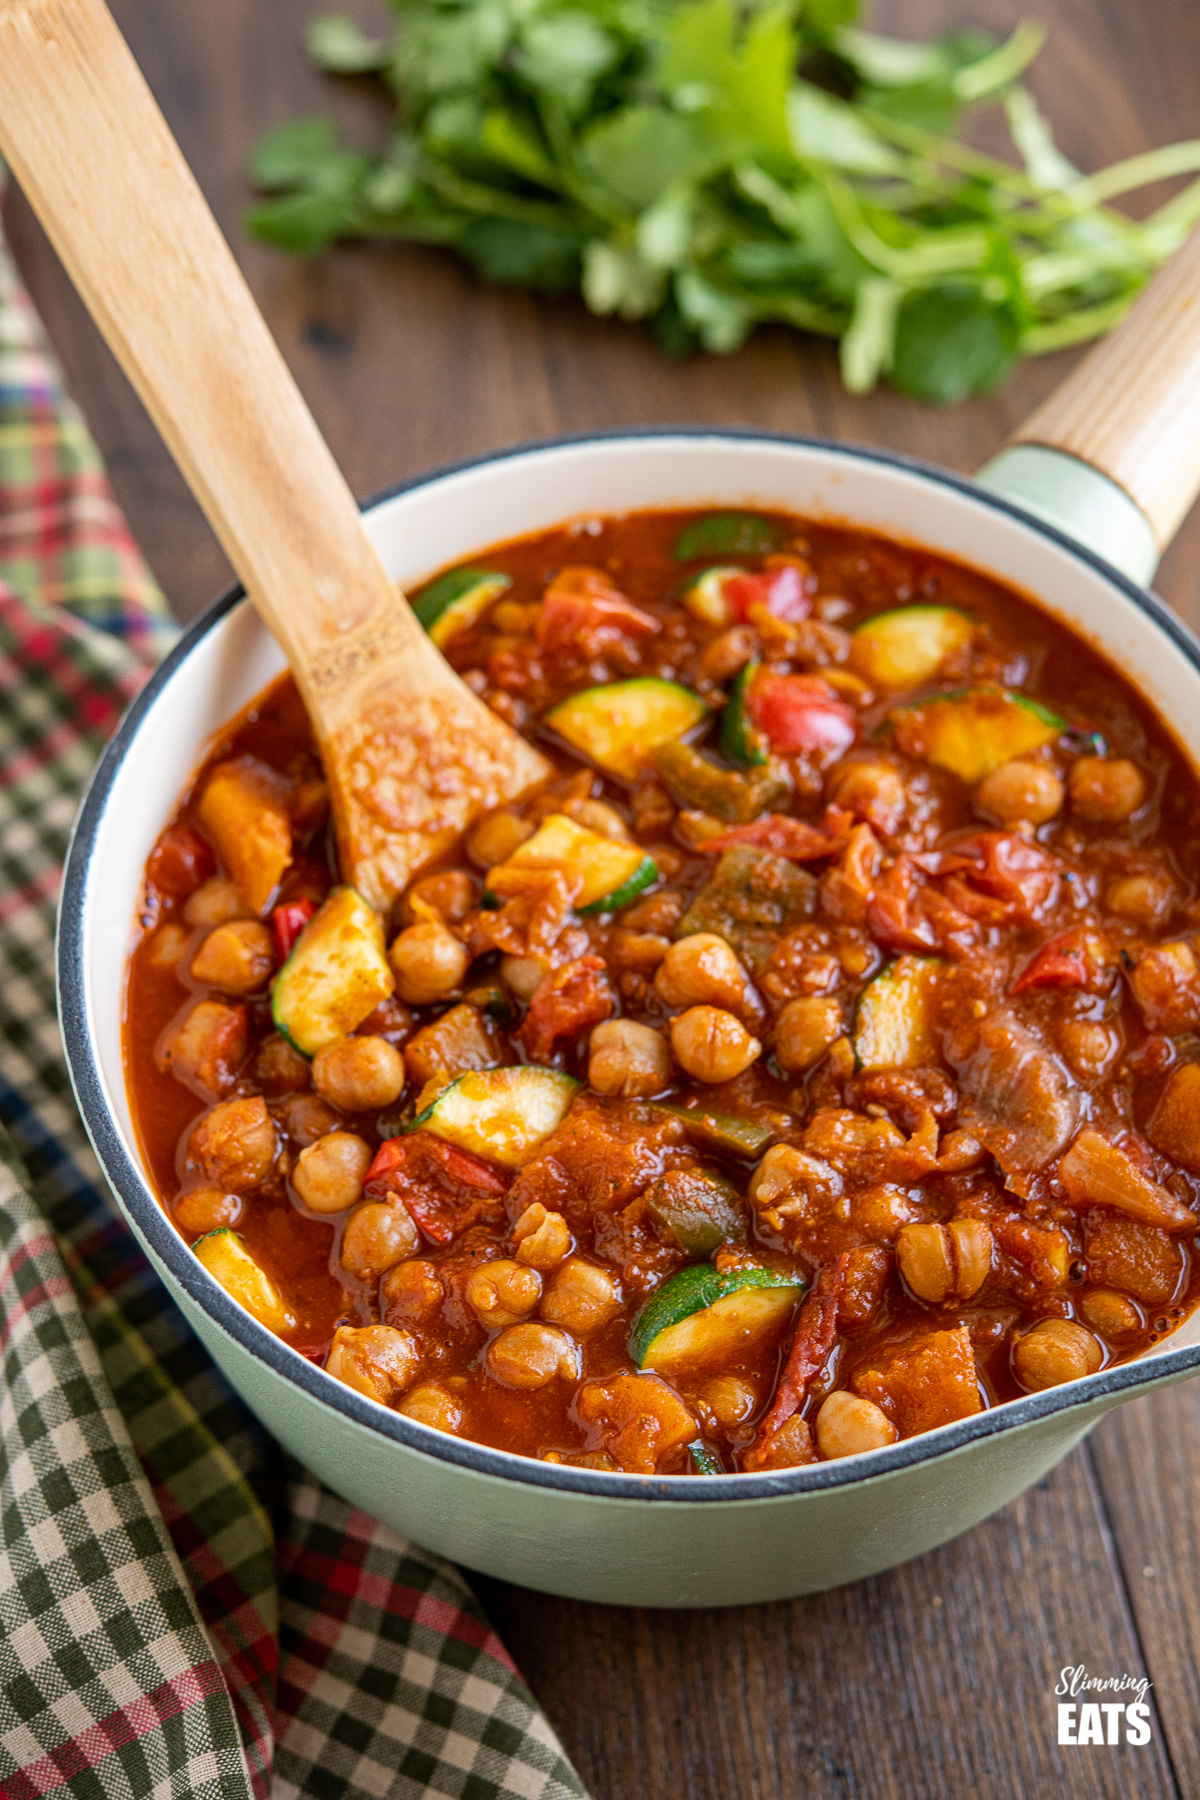 chickpea vegetable chilli in a wooden handled cast iron pan with wooden spoon